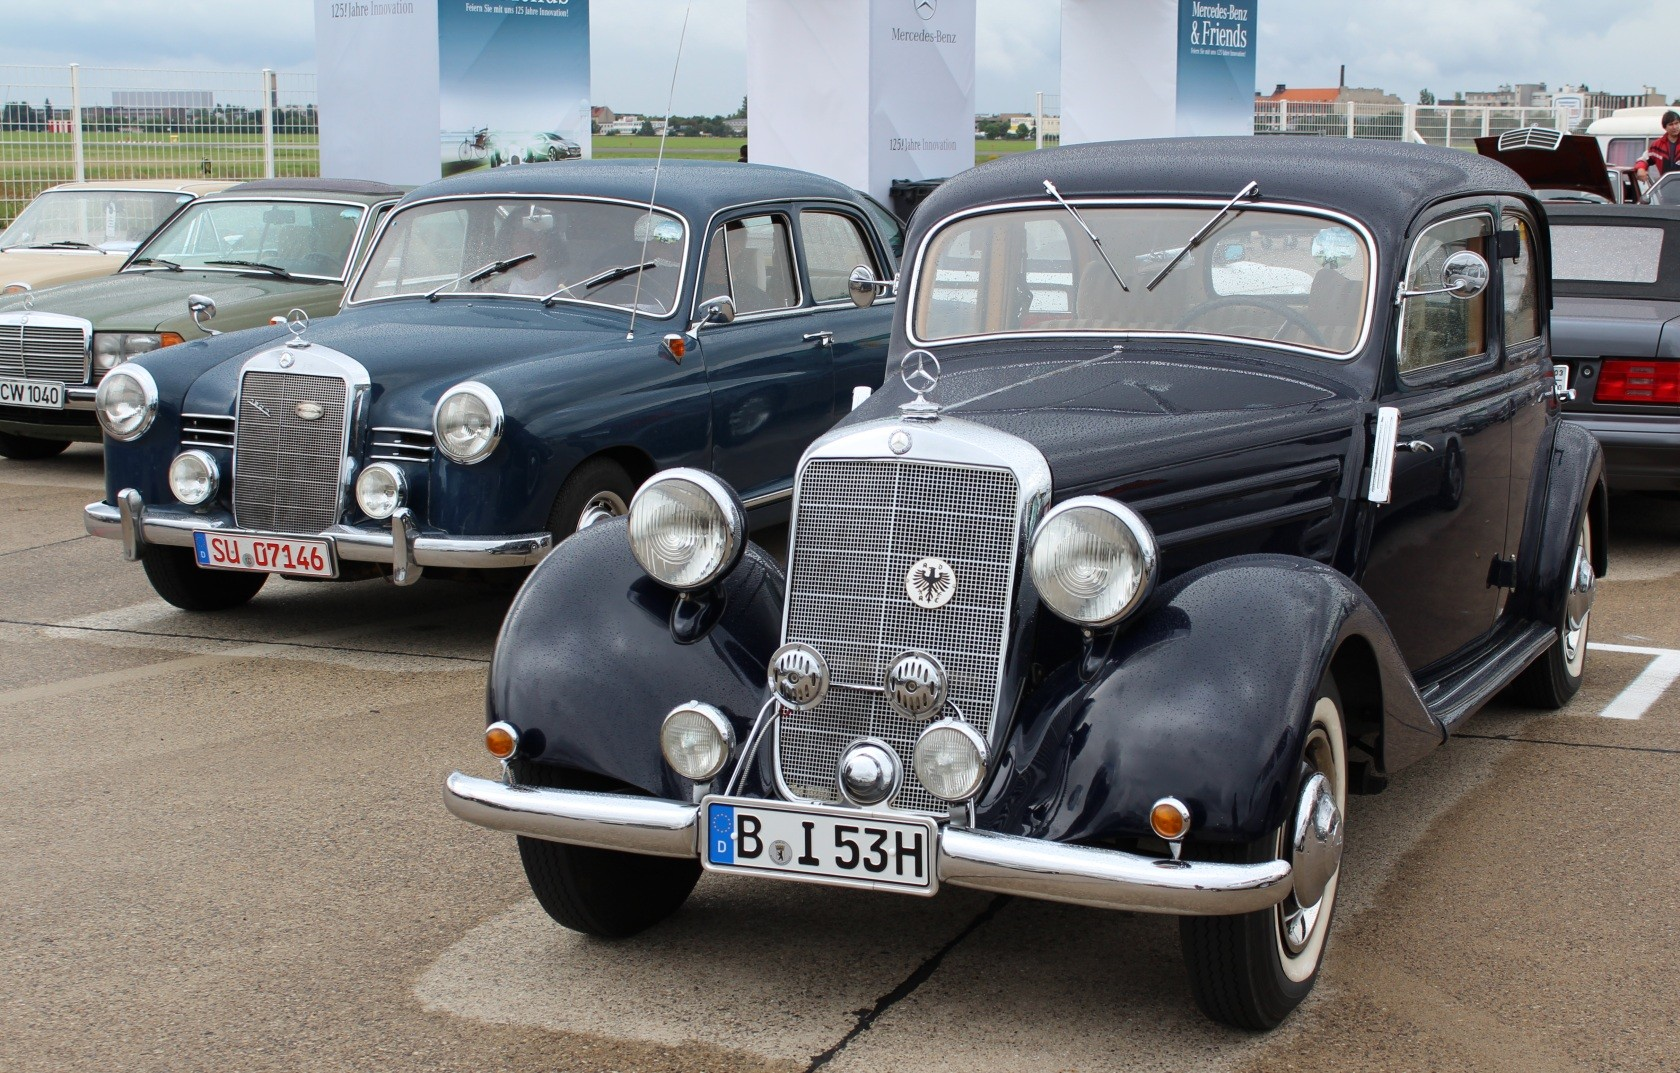 Mercedes-Benz & Friends - 125 Jahre Automobil in Tempelhof VIII